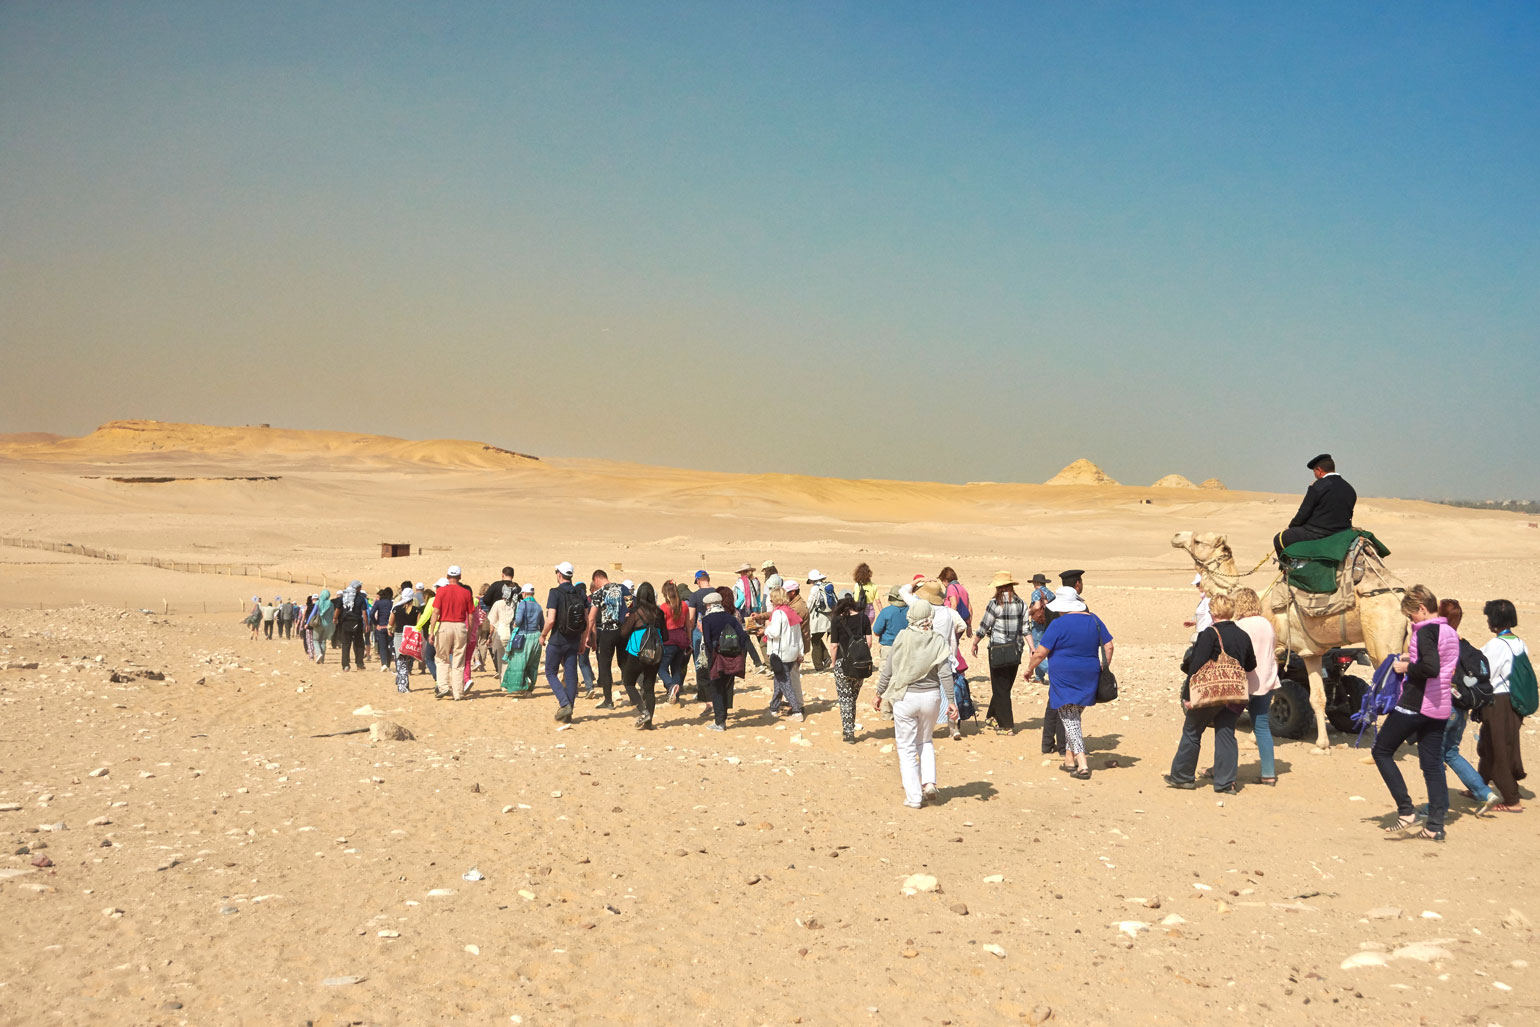 Heading to Serapeum of Saqqara